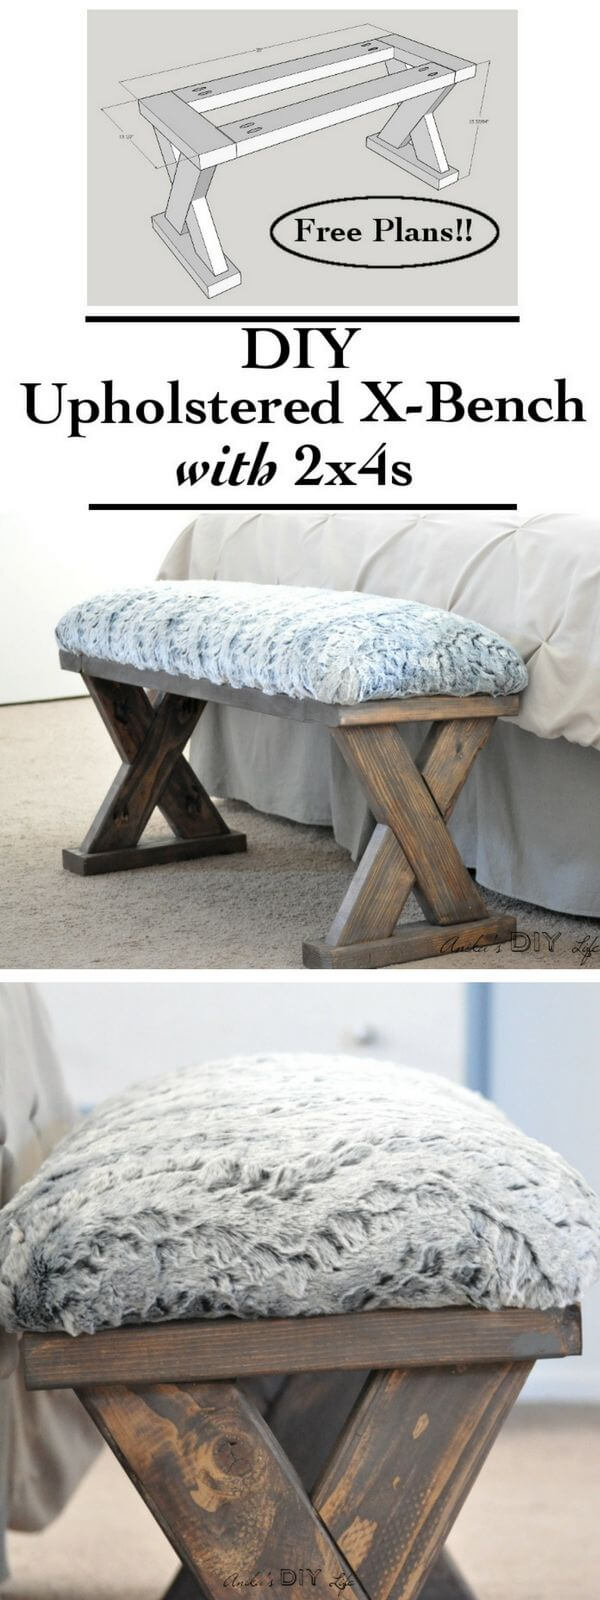 15 Creative DIY Wood Craft Projects You Should Try